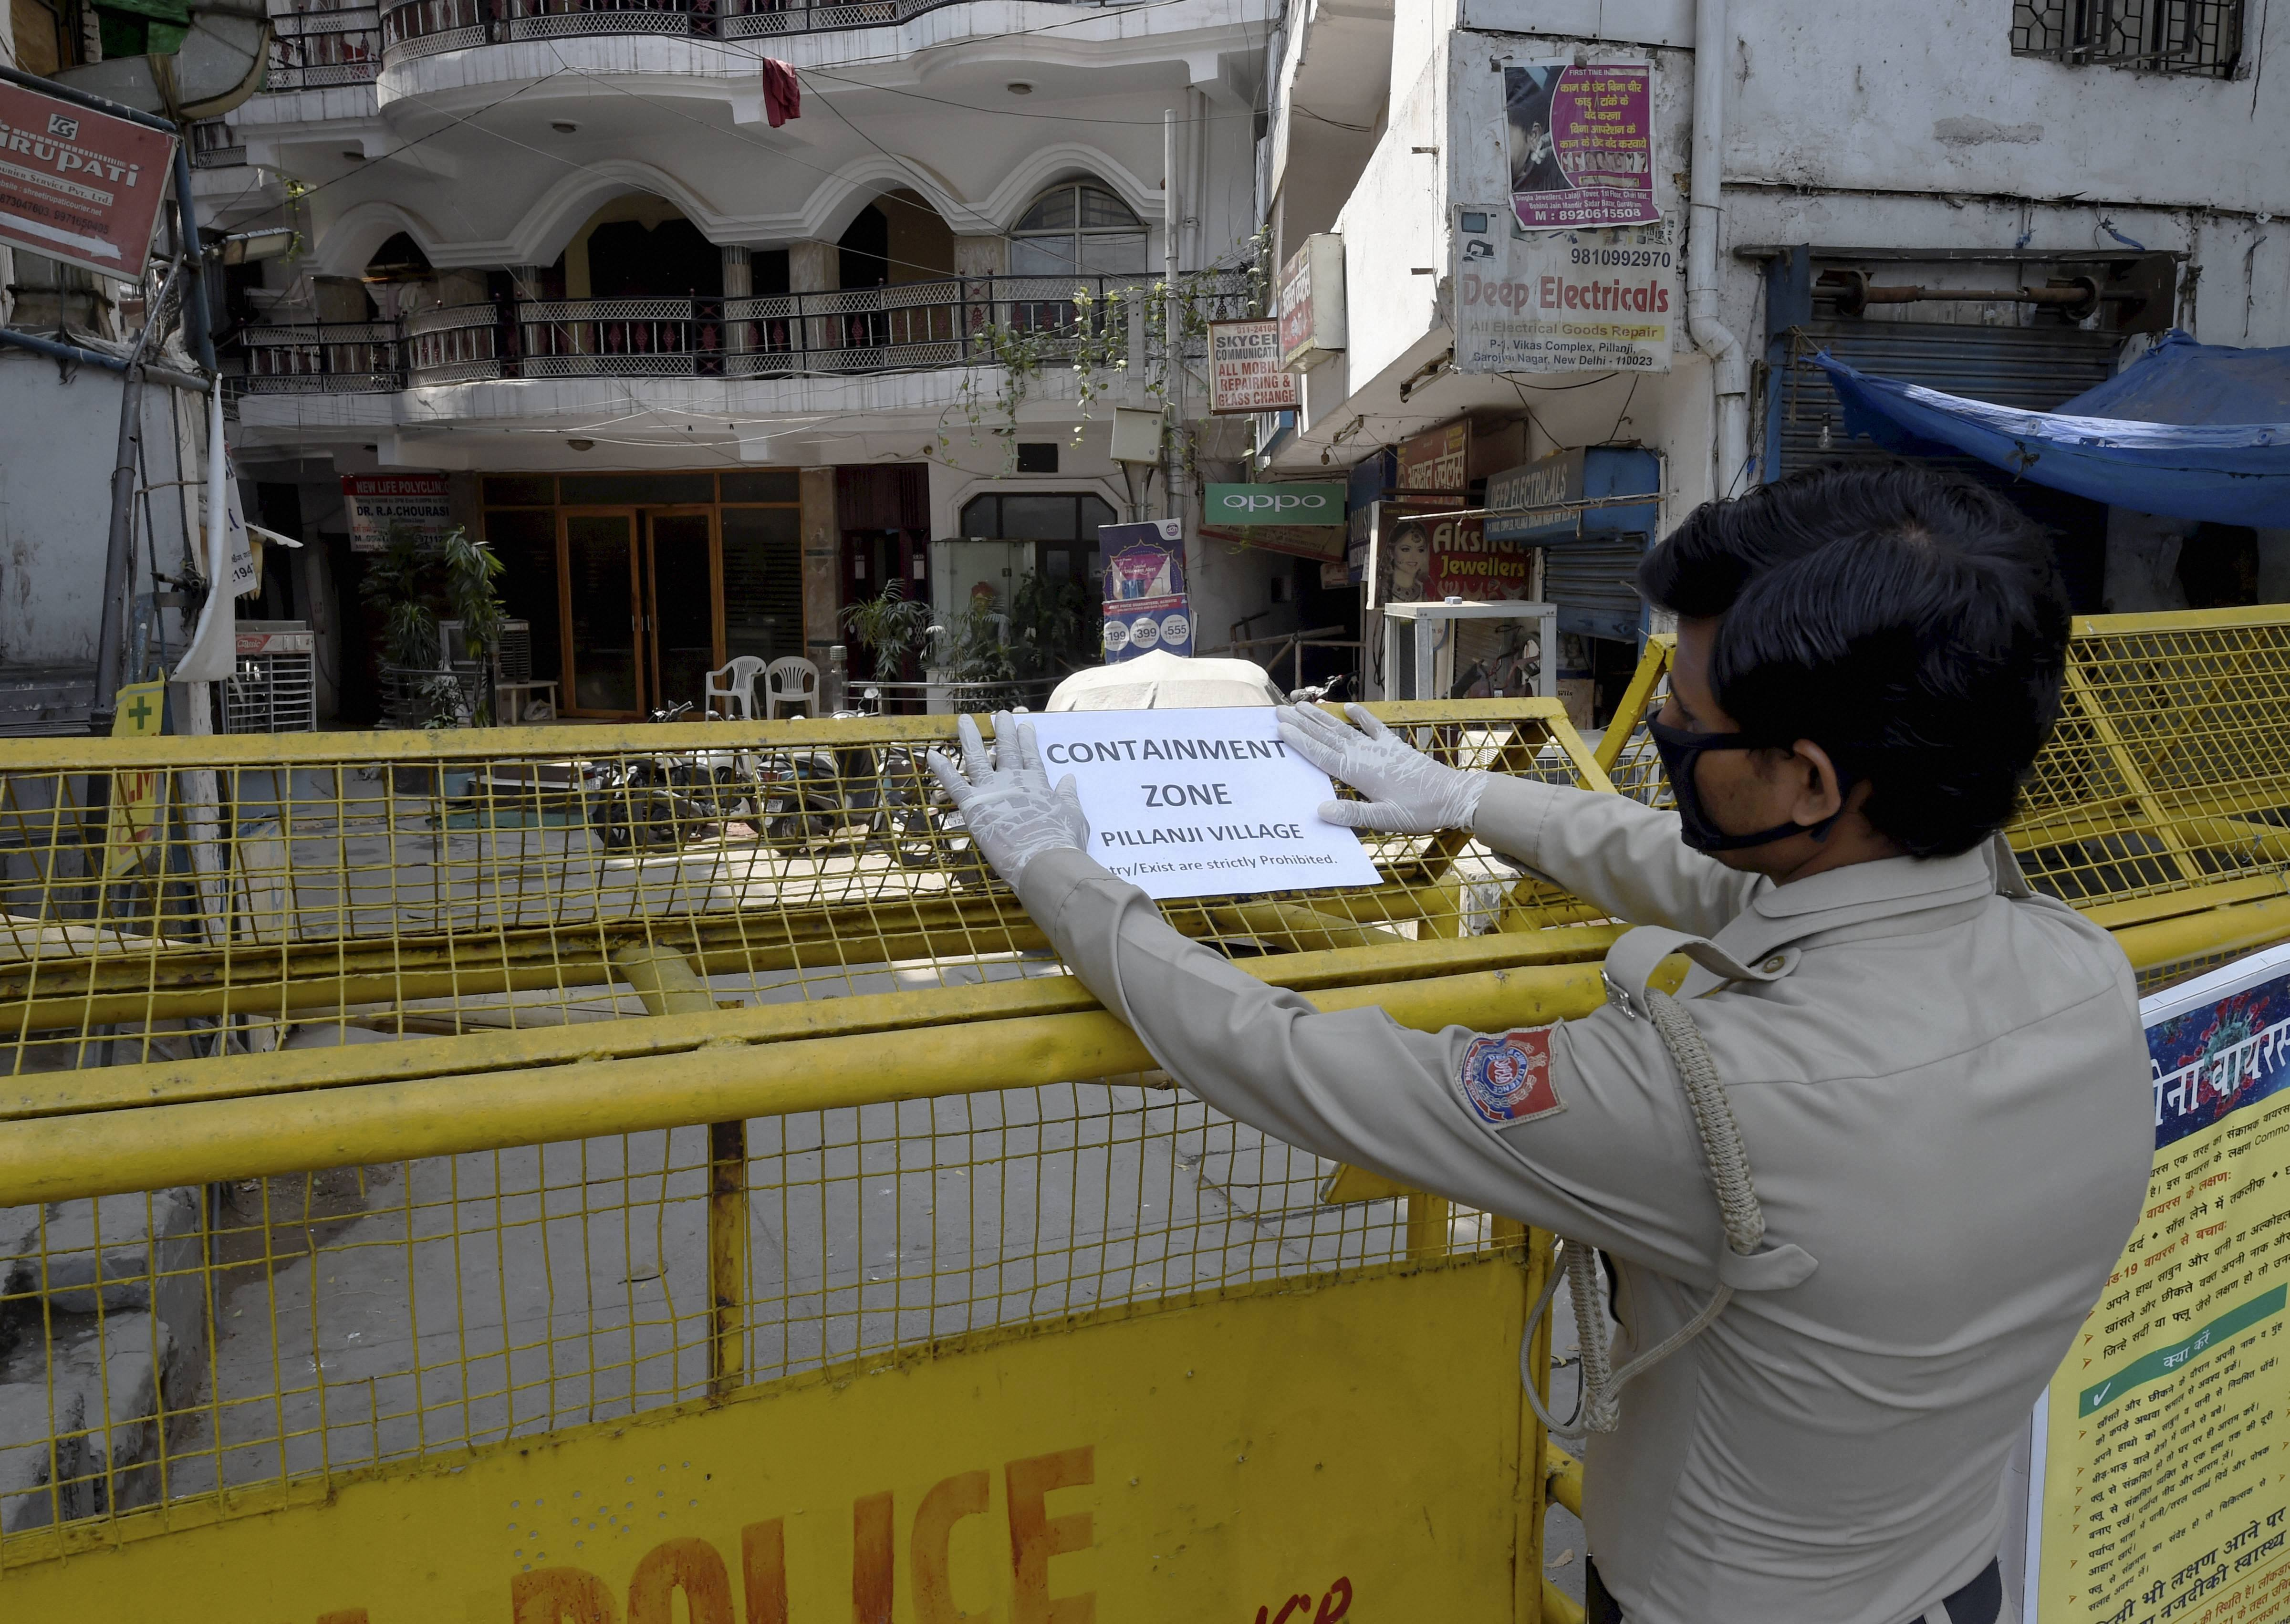 A security guard pastes a notice on a barricade at Pilanji village area, identified as a Covid-19 containment zone, in New Delhi on Tuesday.